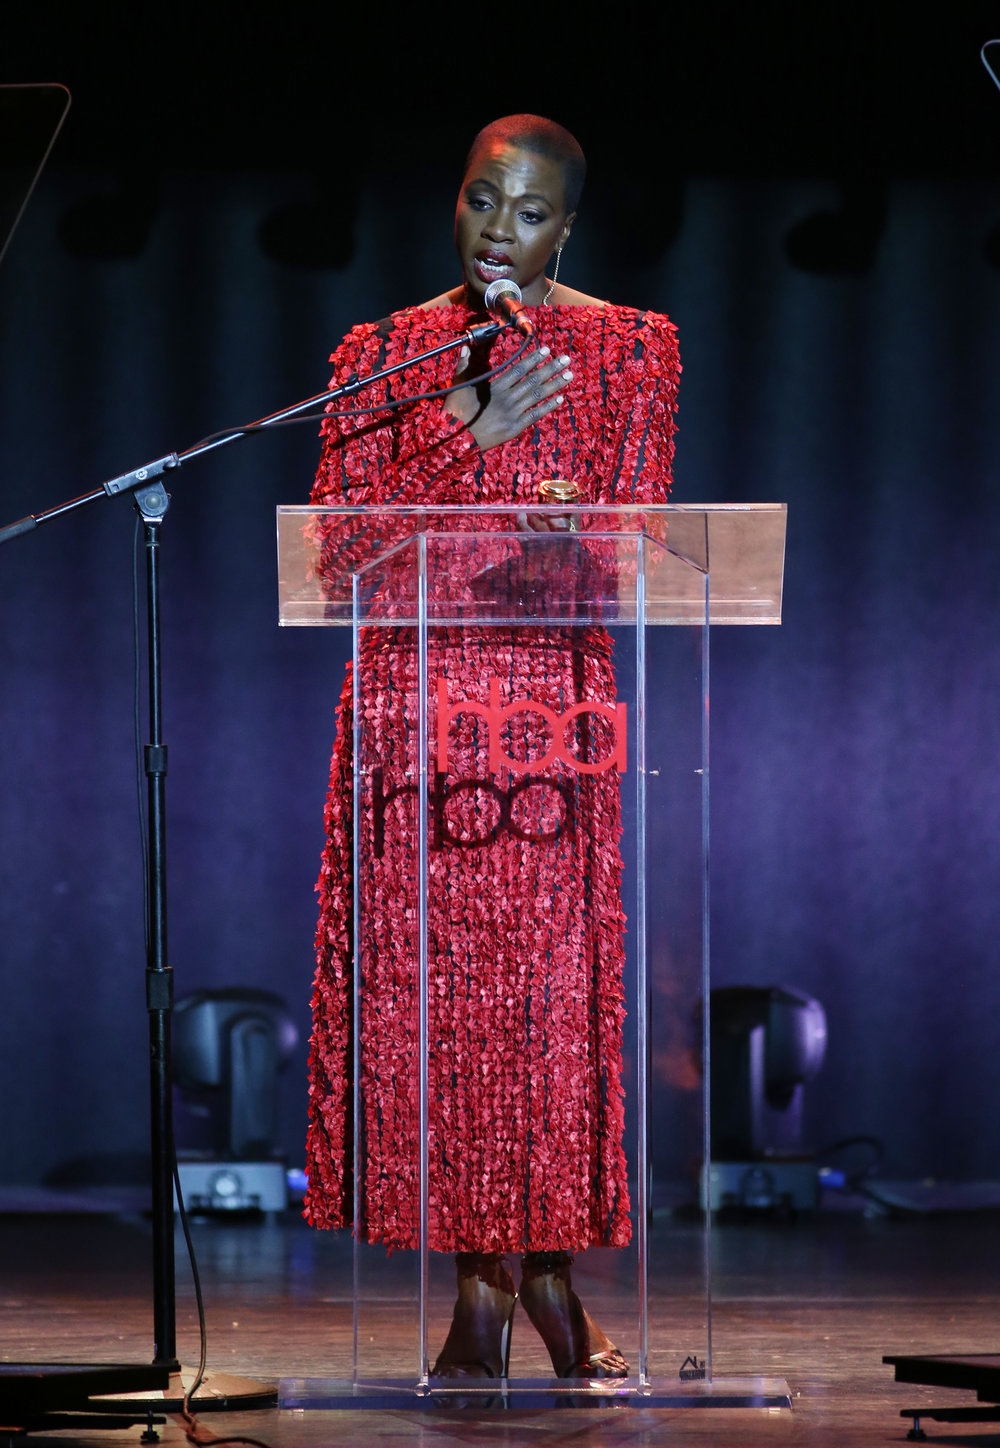 Danai Gurira | Feb 25, 2018, Hollywood Beauty Awards held at the Avalon